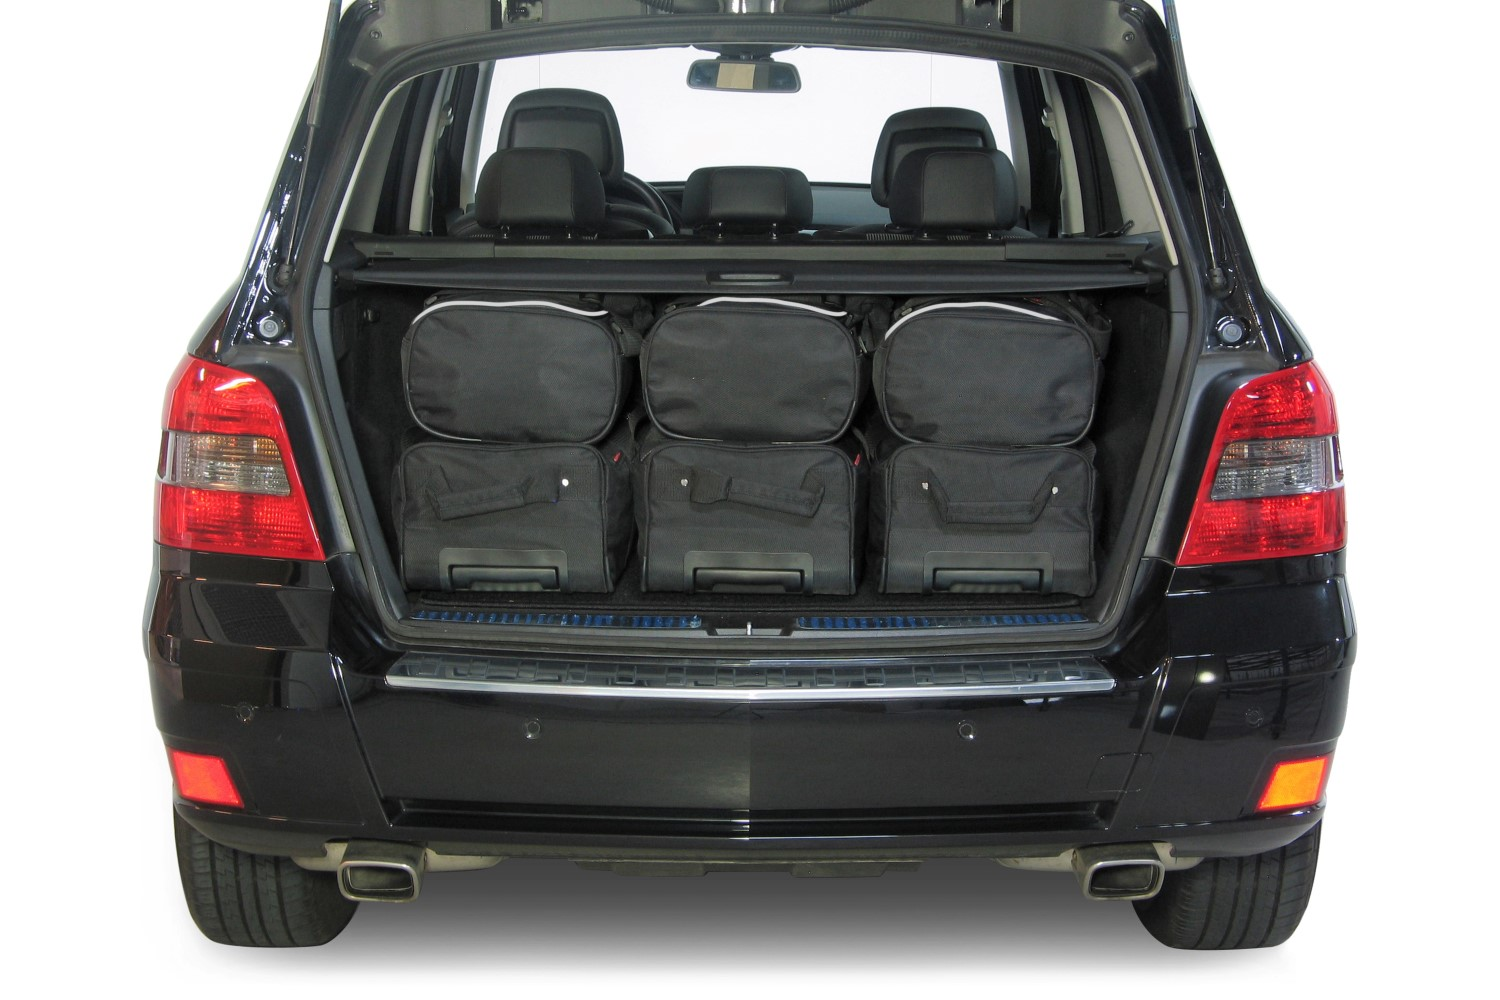 Glk mercedes benz glk x204 2008 2015 car bags for Mercedes benz backpack